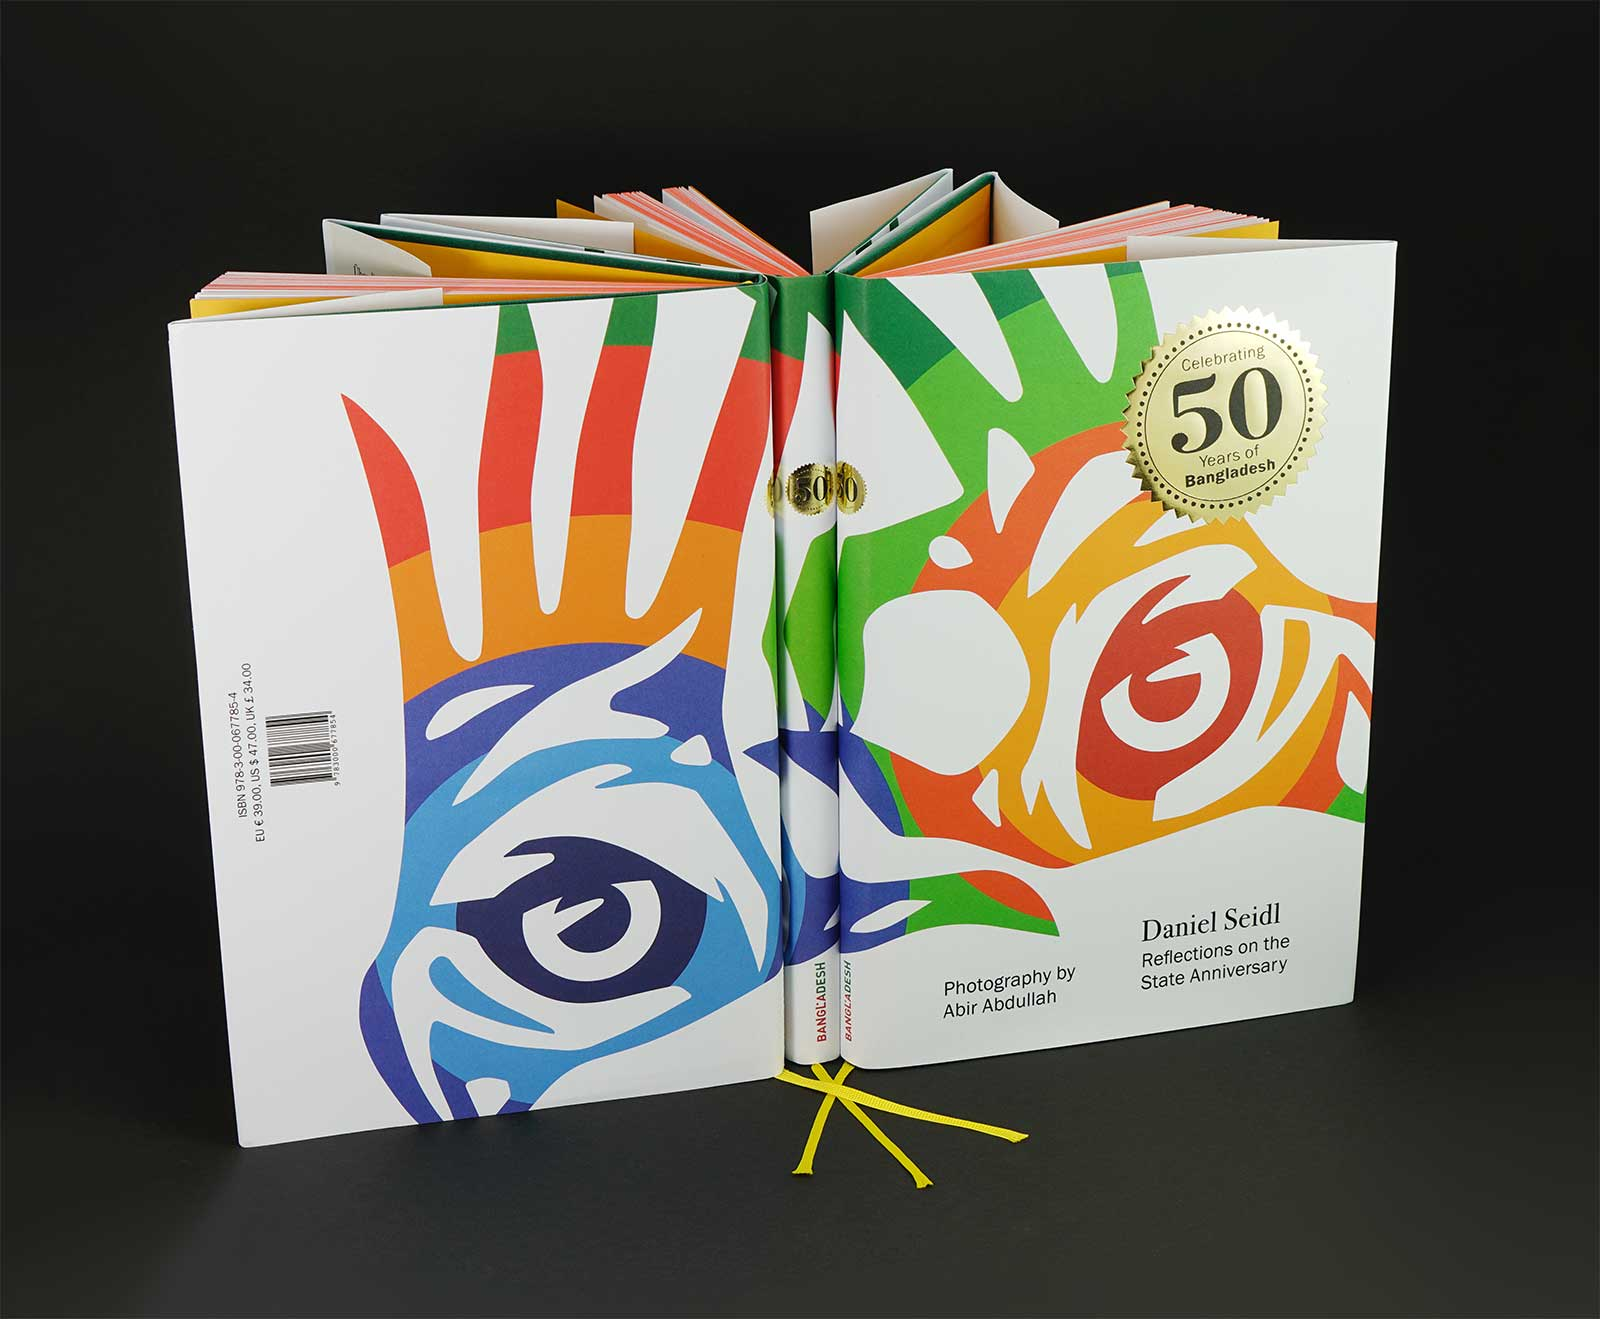 trommer 50 years of bangladesh book logo cover